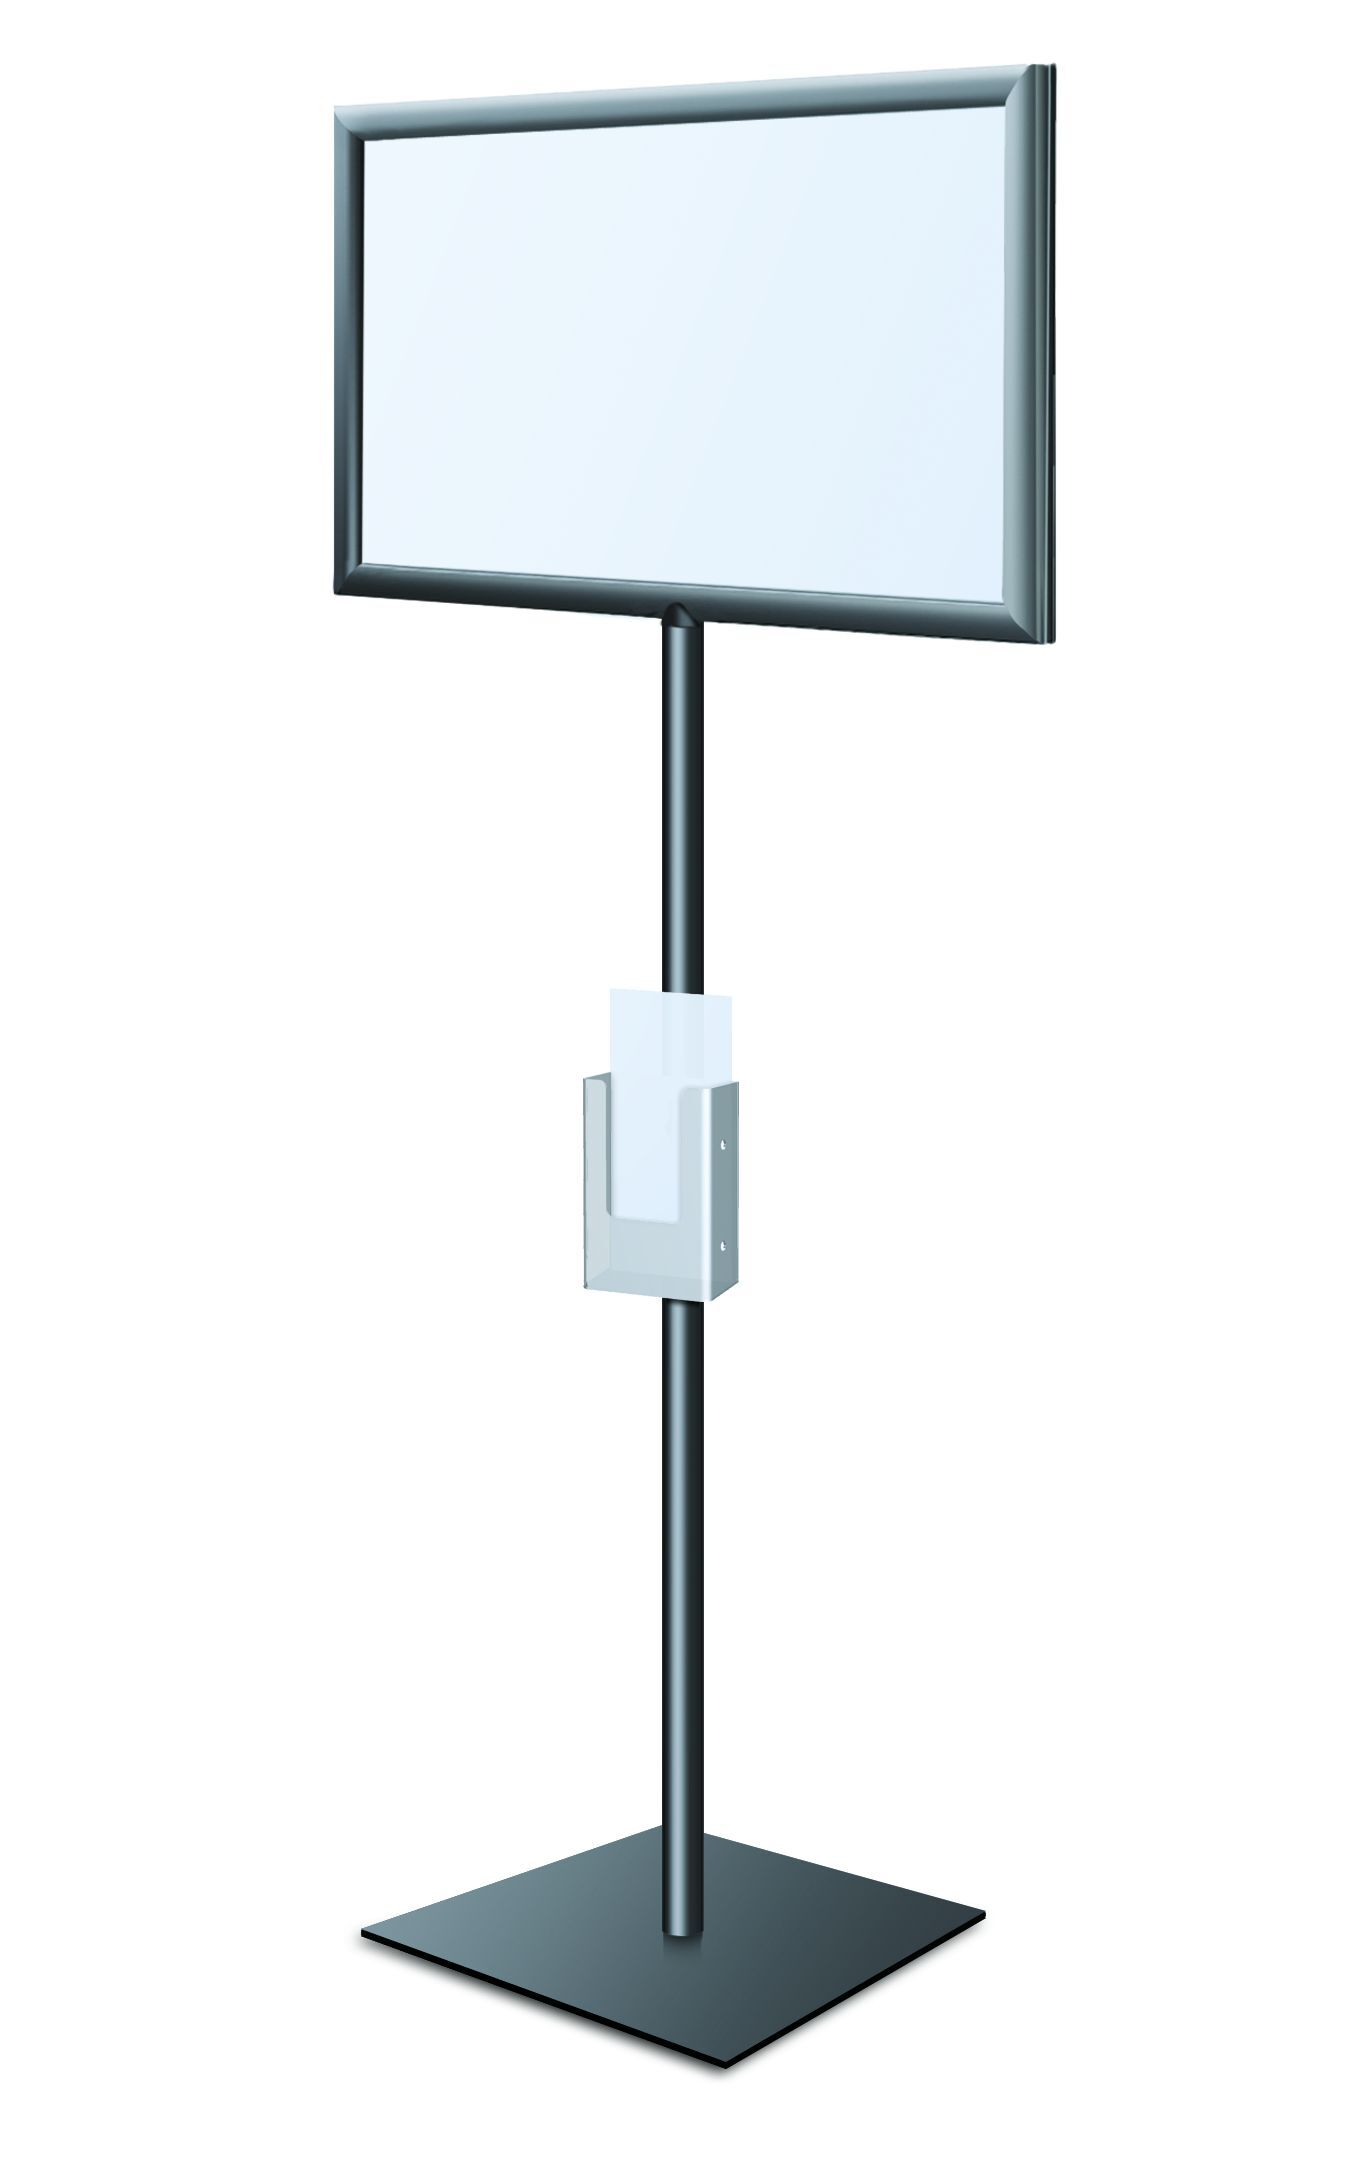 Perfex Pedestal SignFrame Graphic Size: 17